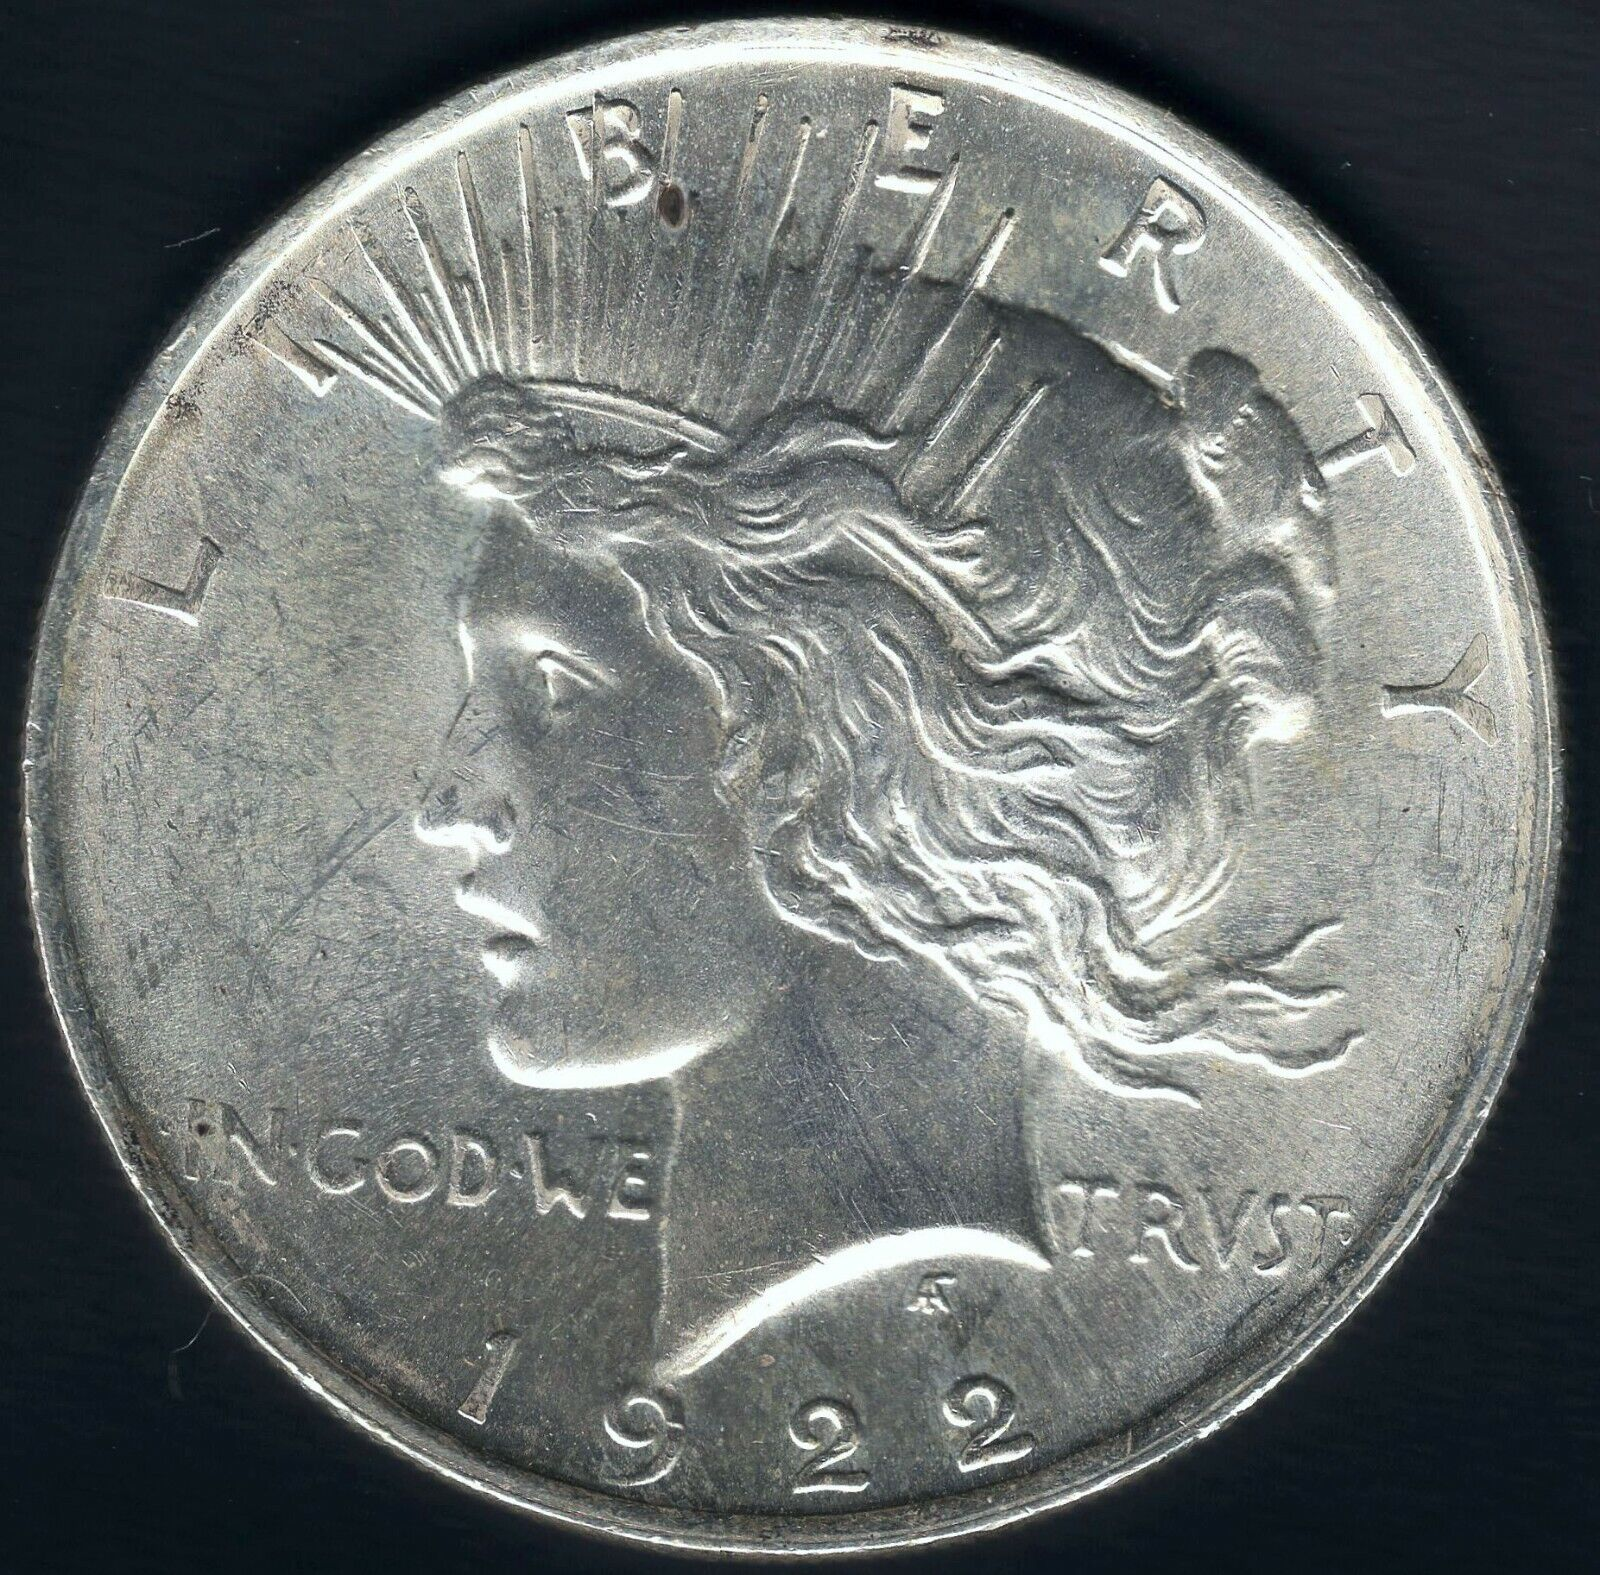 1922 Silver Peace Dollar - Uncirculated And A Beauty - HI RES SCANS  - $26.00